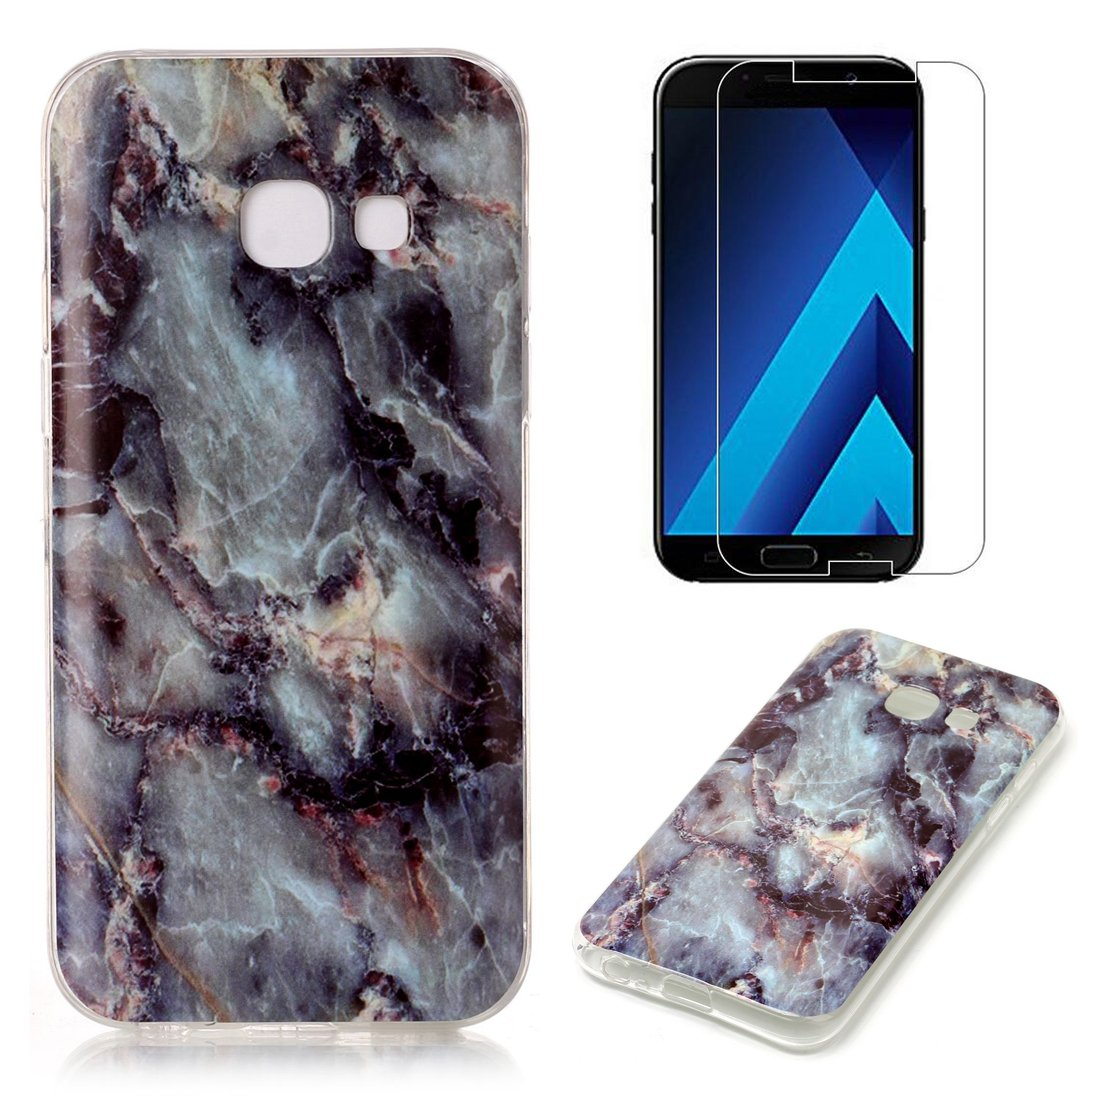 for Samsung Galaxy J7 Prime Marble Case with Screen Protector, OYIME Creative Glossy Purple & White Marble Pattern Design Protective Bumper Soft Silicone Slim Thin Rubber Luxury Shockproof Cover